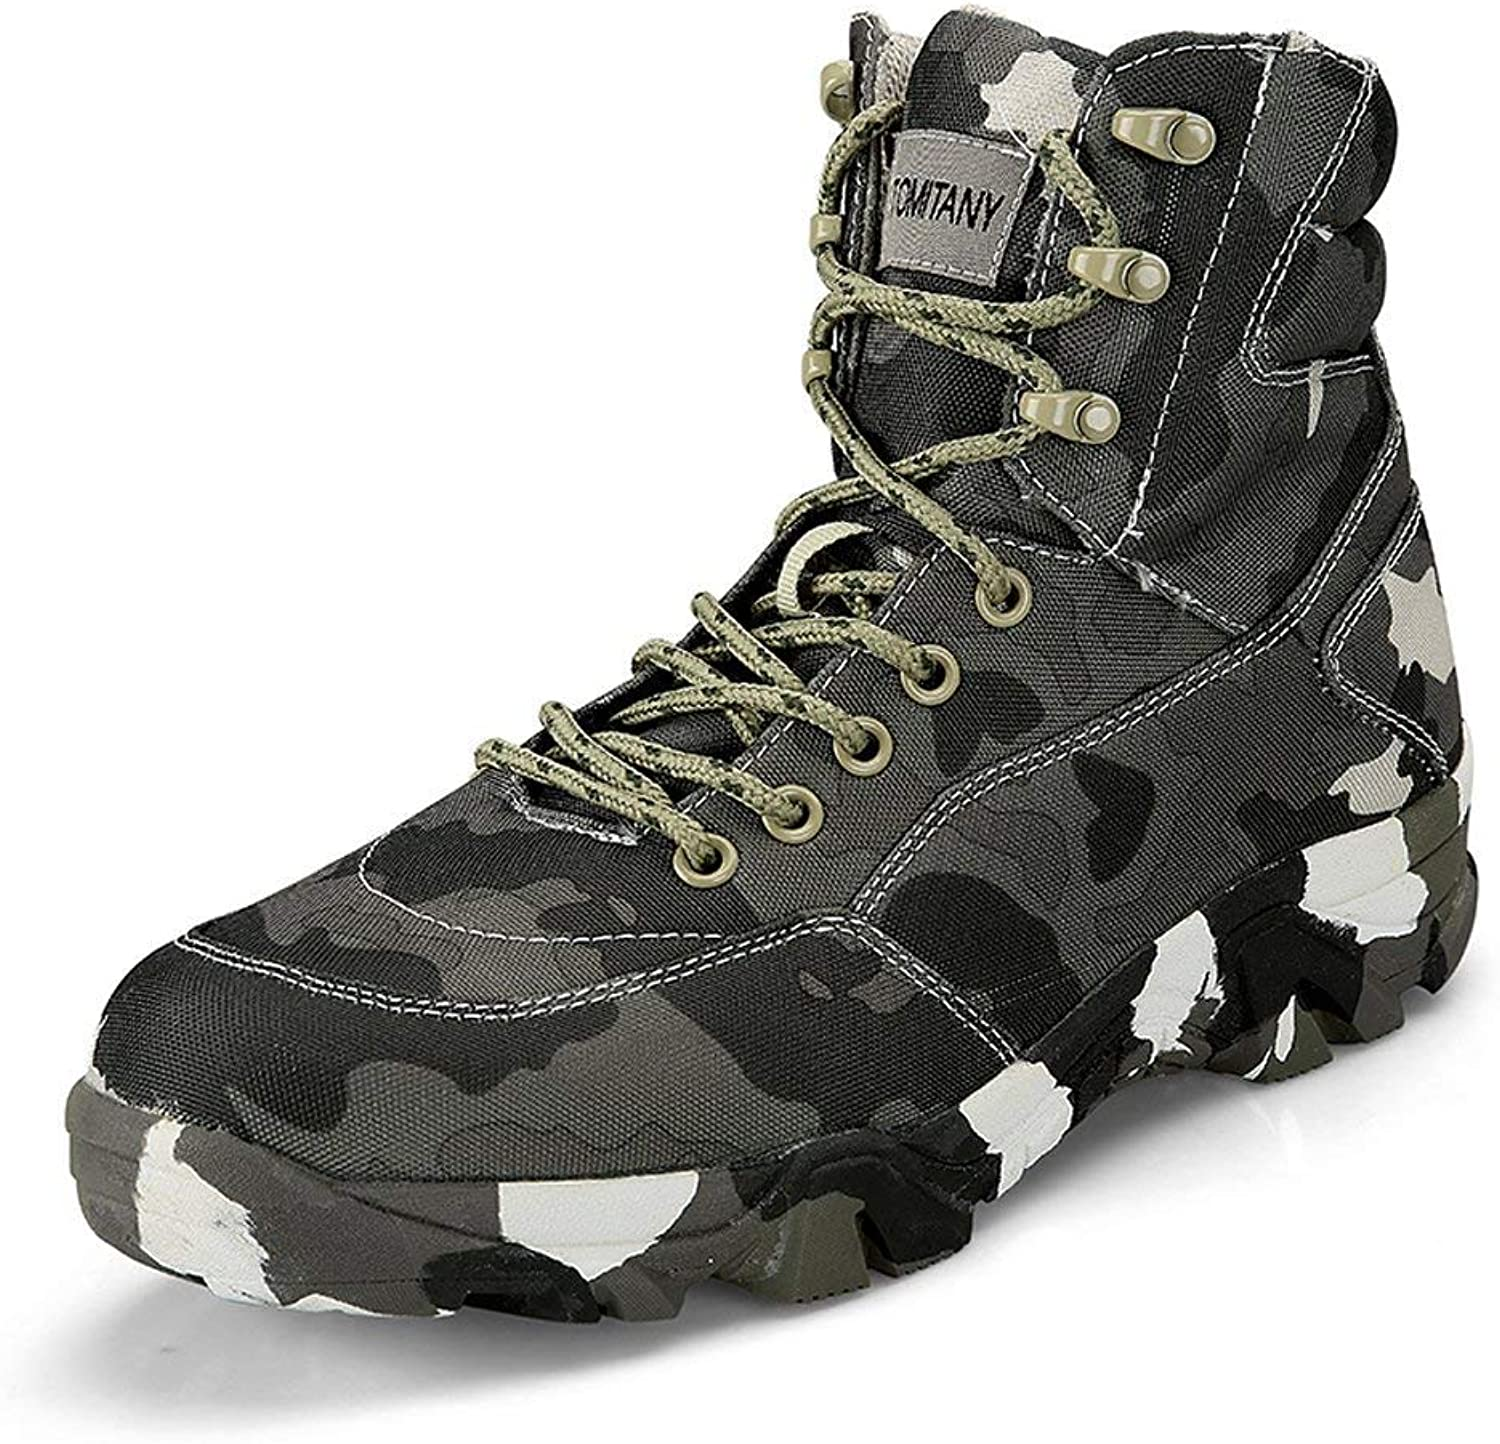 LiliChan Men's Lightweight Waterproof and Non-Slip Outdoors Hiking Boots Camouflage Military Boots